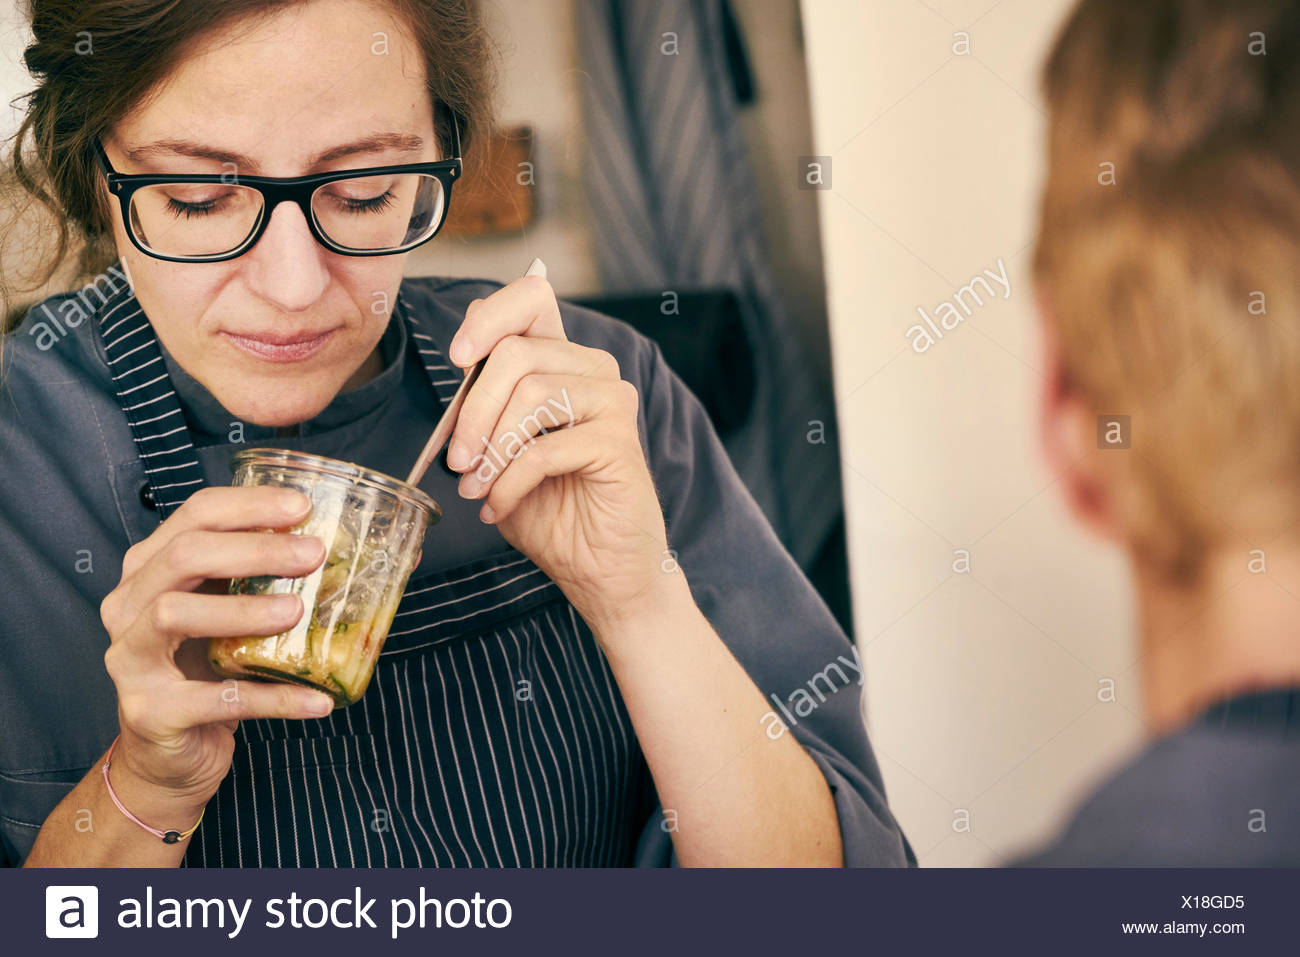 Chef eating food from glass jar - Stock Image